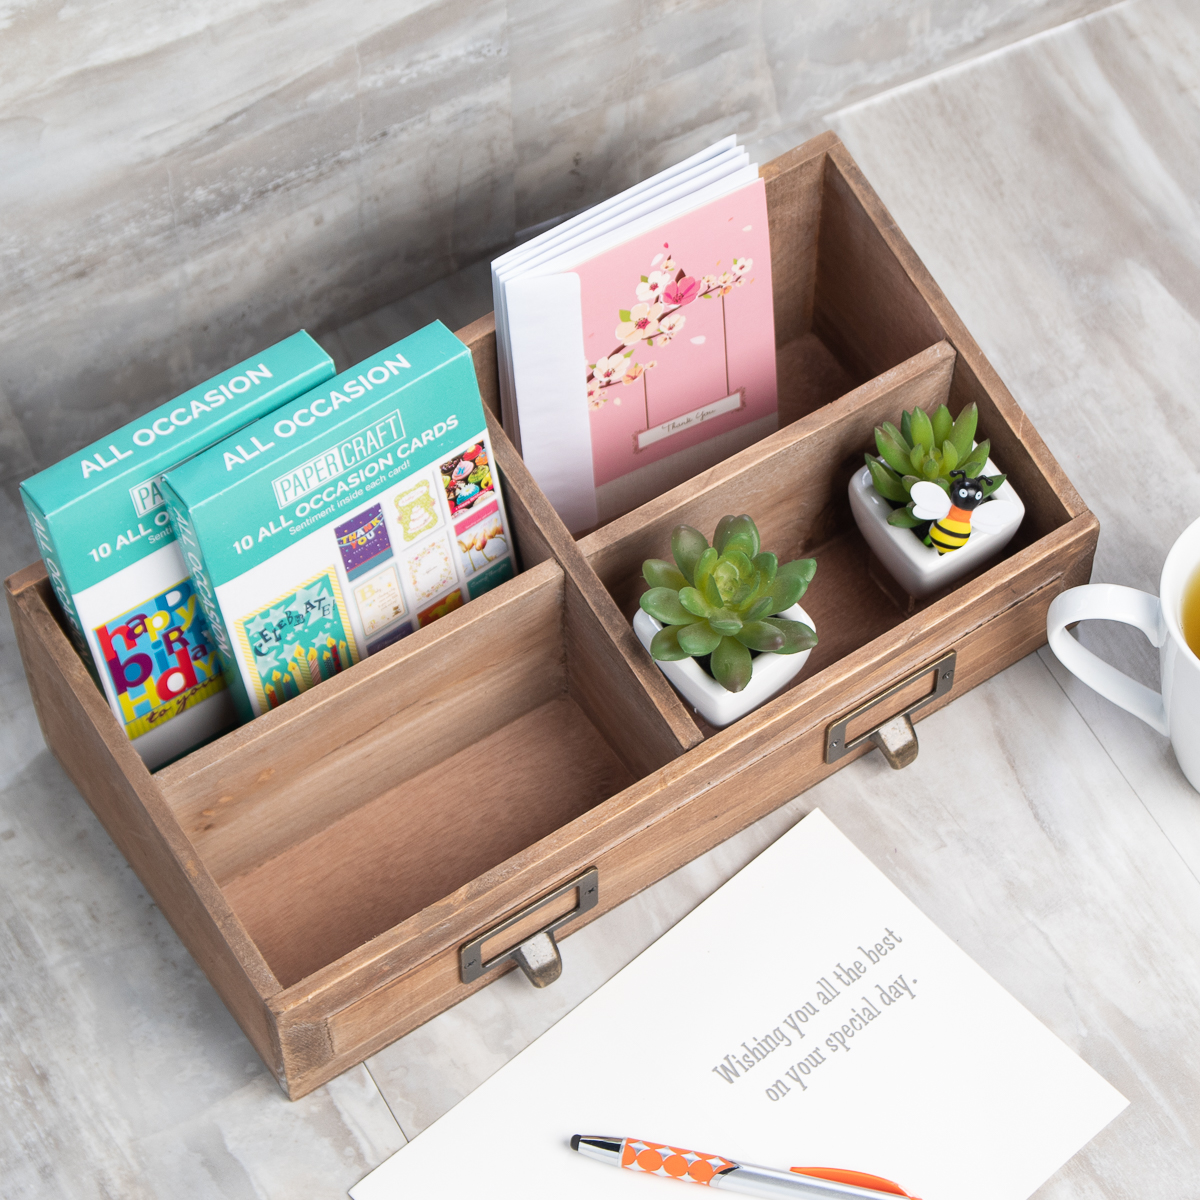 Cheung's Rustic Wood Desk Organizer 4 Section Organizer